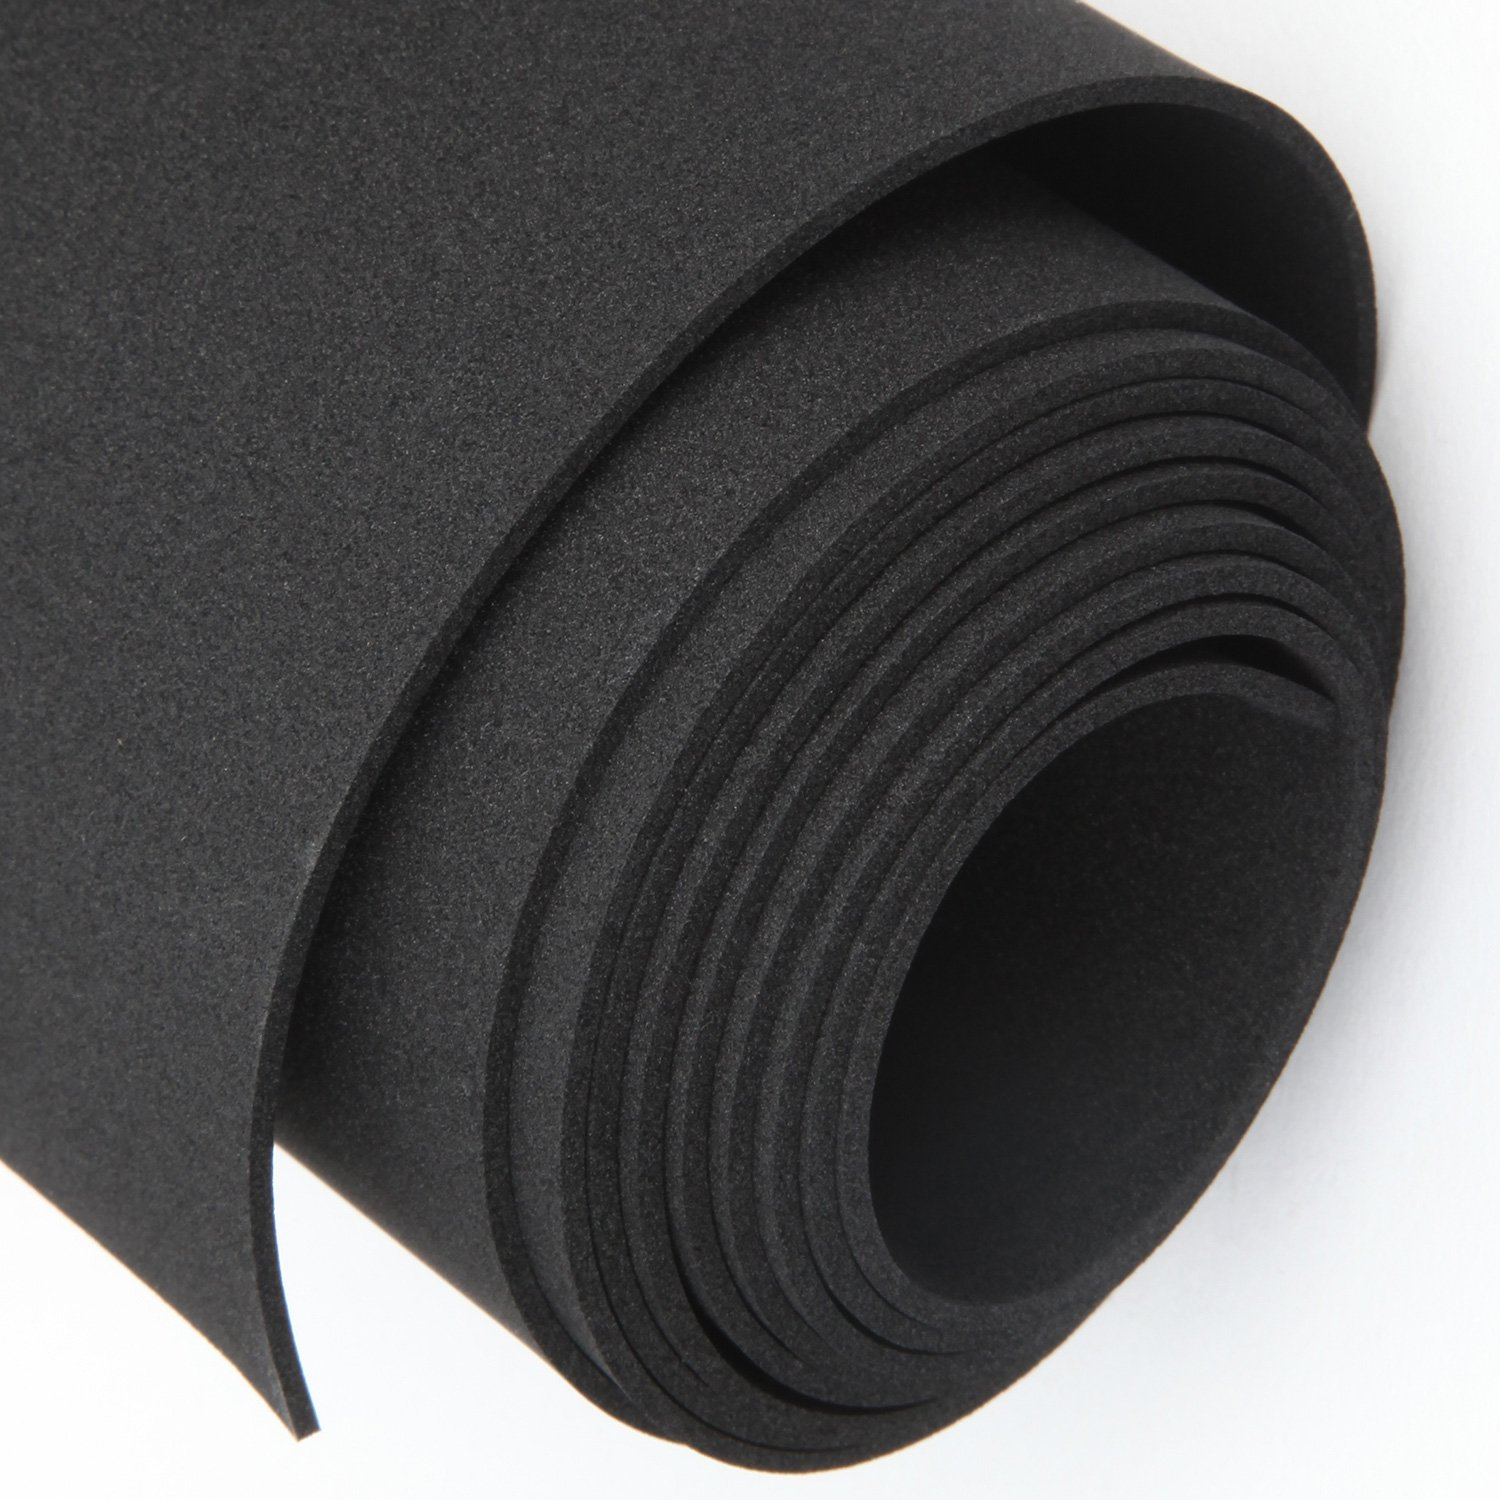 Foam Padding Roll >> Magzo Rubber Padding Foam Roll 1 16 Thick X 12 Wide X 4 9 Feet Long Non Adhesive Insulation Rubber Sheet Neoprene Insulation Multi Function